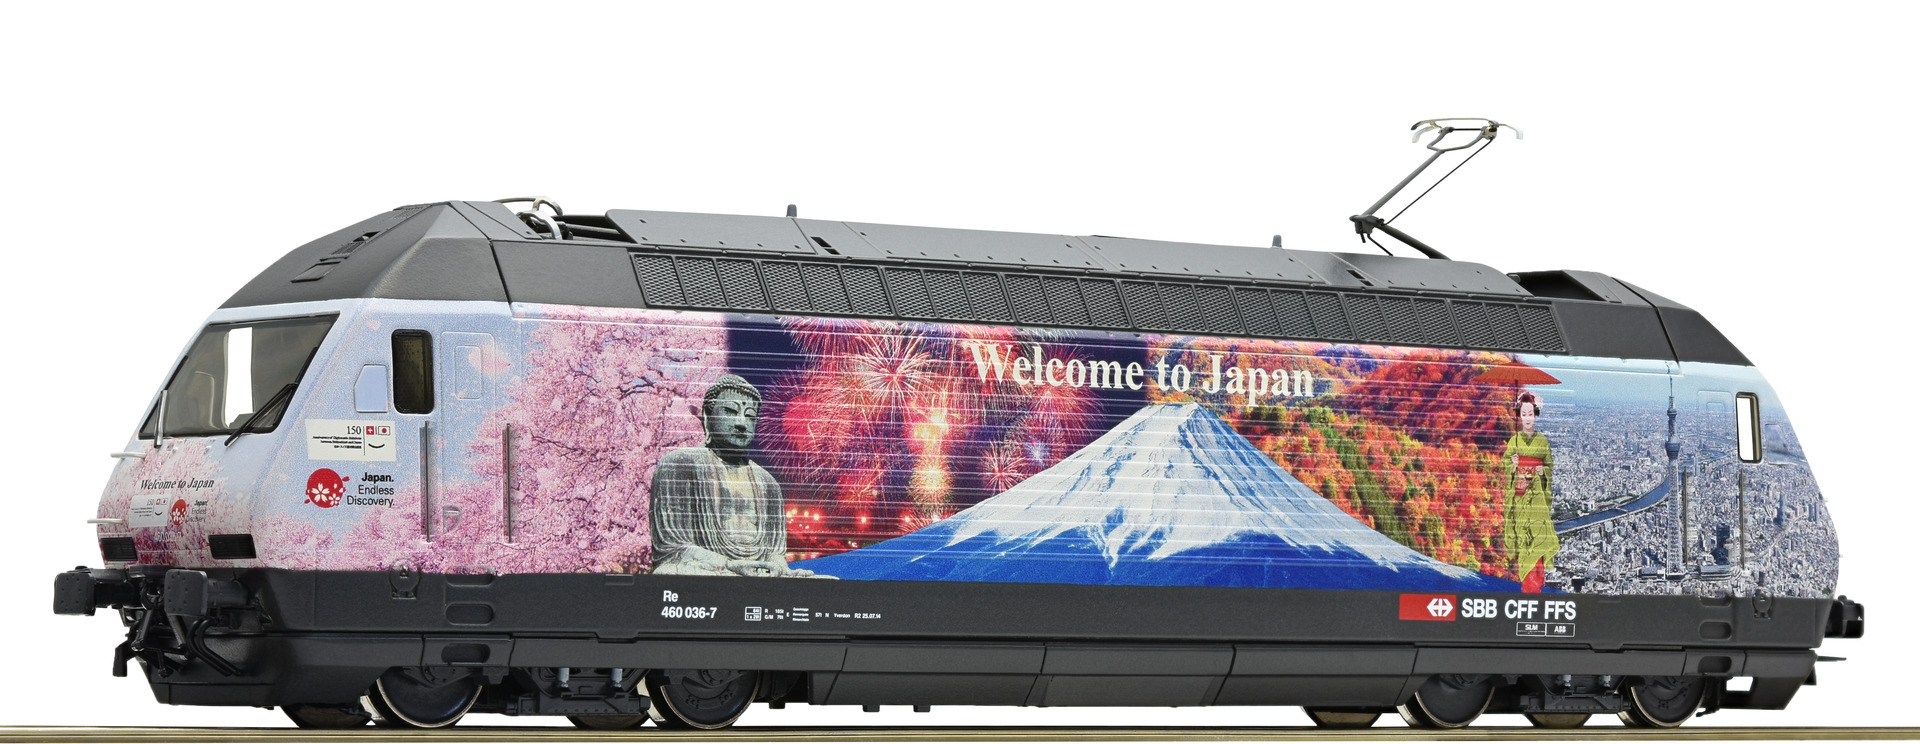 Roco73271 Re460 SBB, welcome to Japan, sound